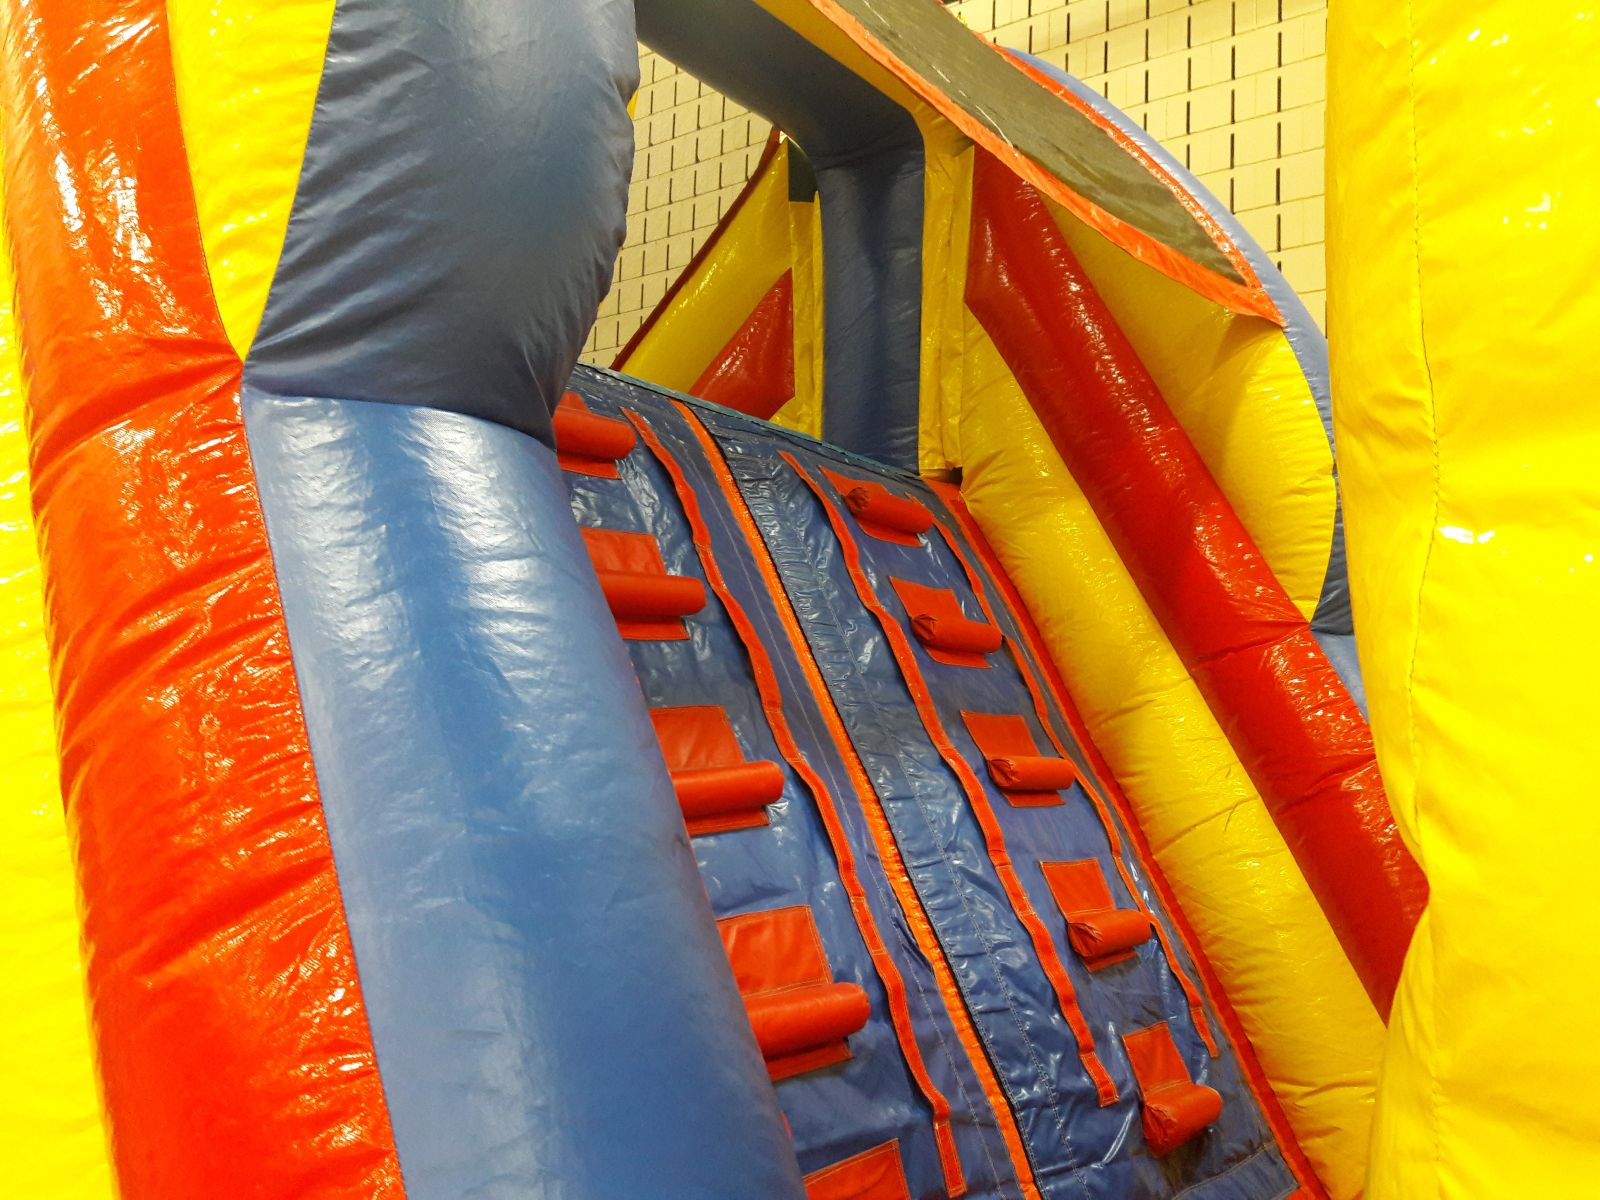 Climbing wall to top of the 13 foot slide on obstacle course